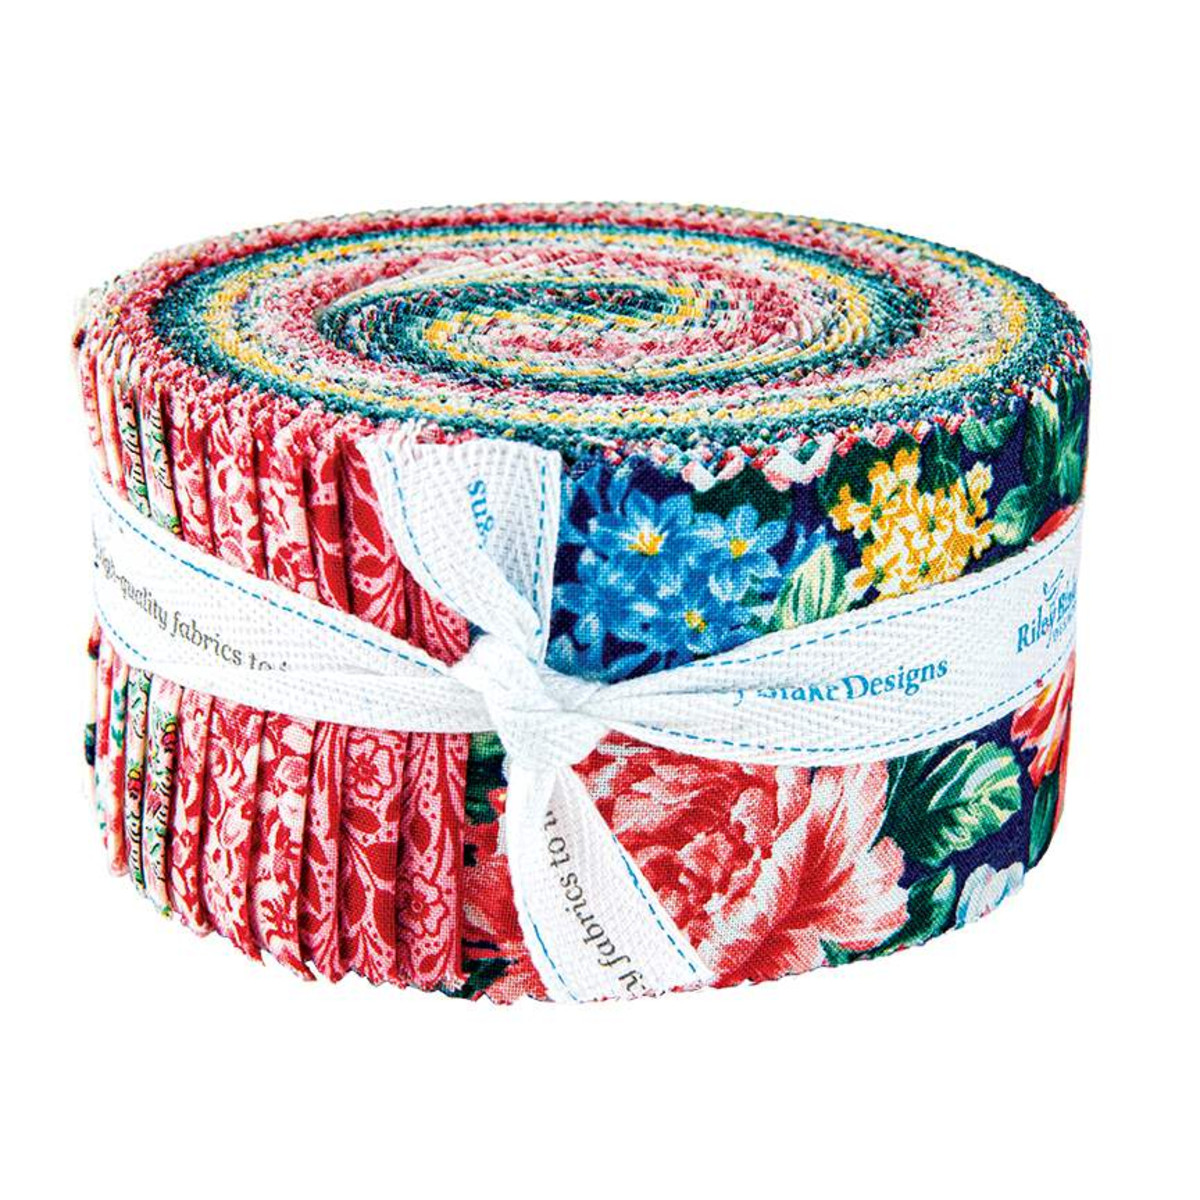 Riley Blake Jelly Roll - The Emporium Collection TWO by Liberty Fabrics